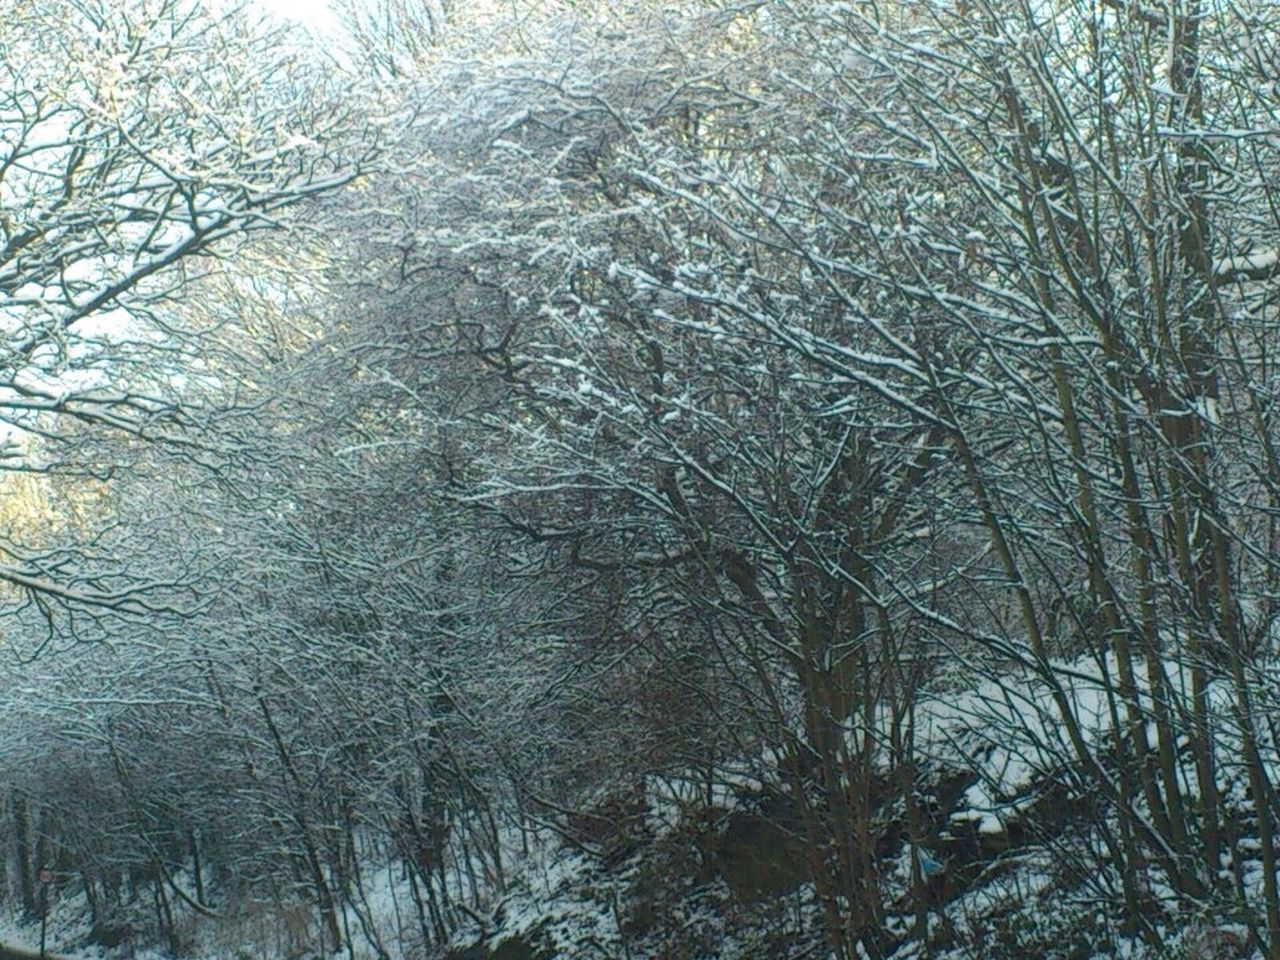 tree, bare tree, nature, branch, beauty in nature, no people, cold temperature, tranquility, day, winter, outdoors, forest, snow, growth, plant, backgrounds